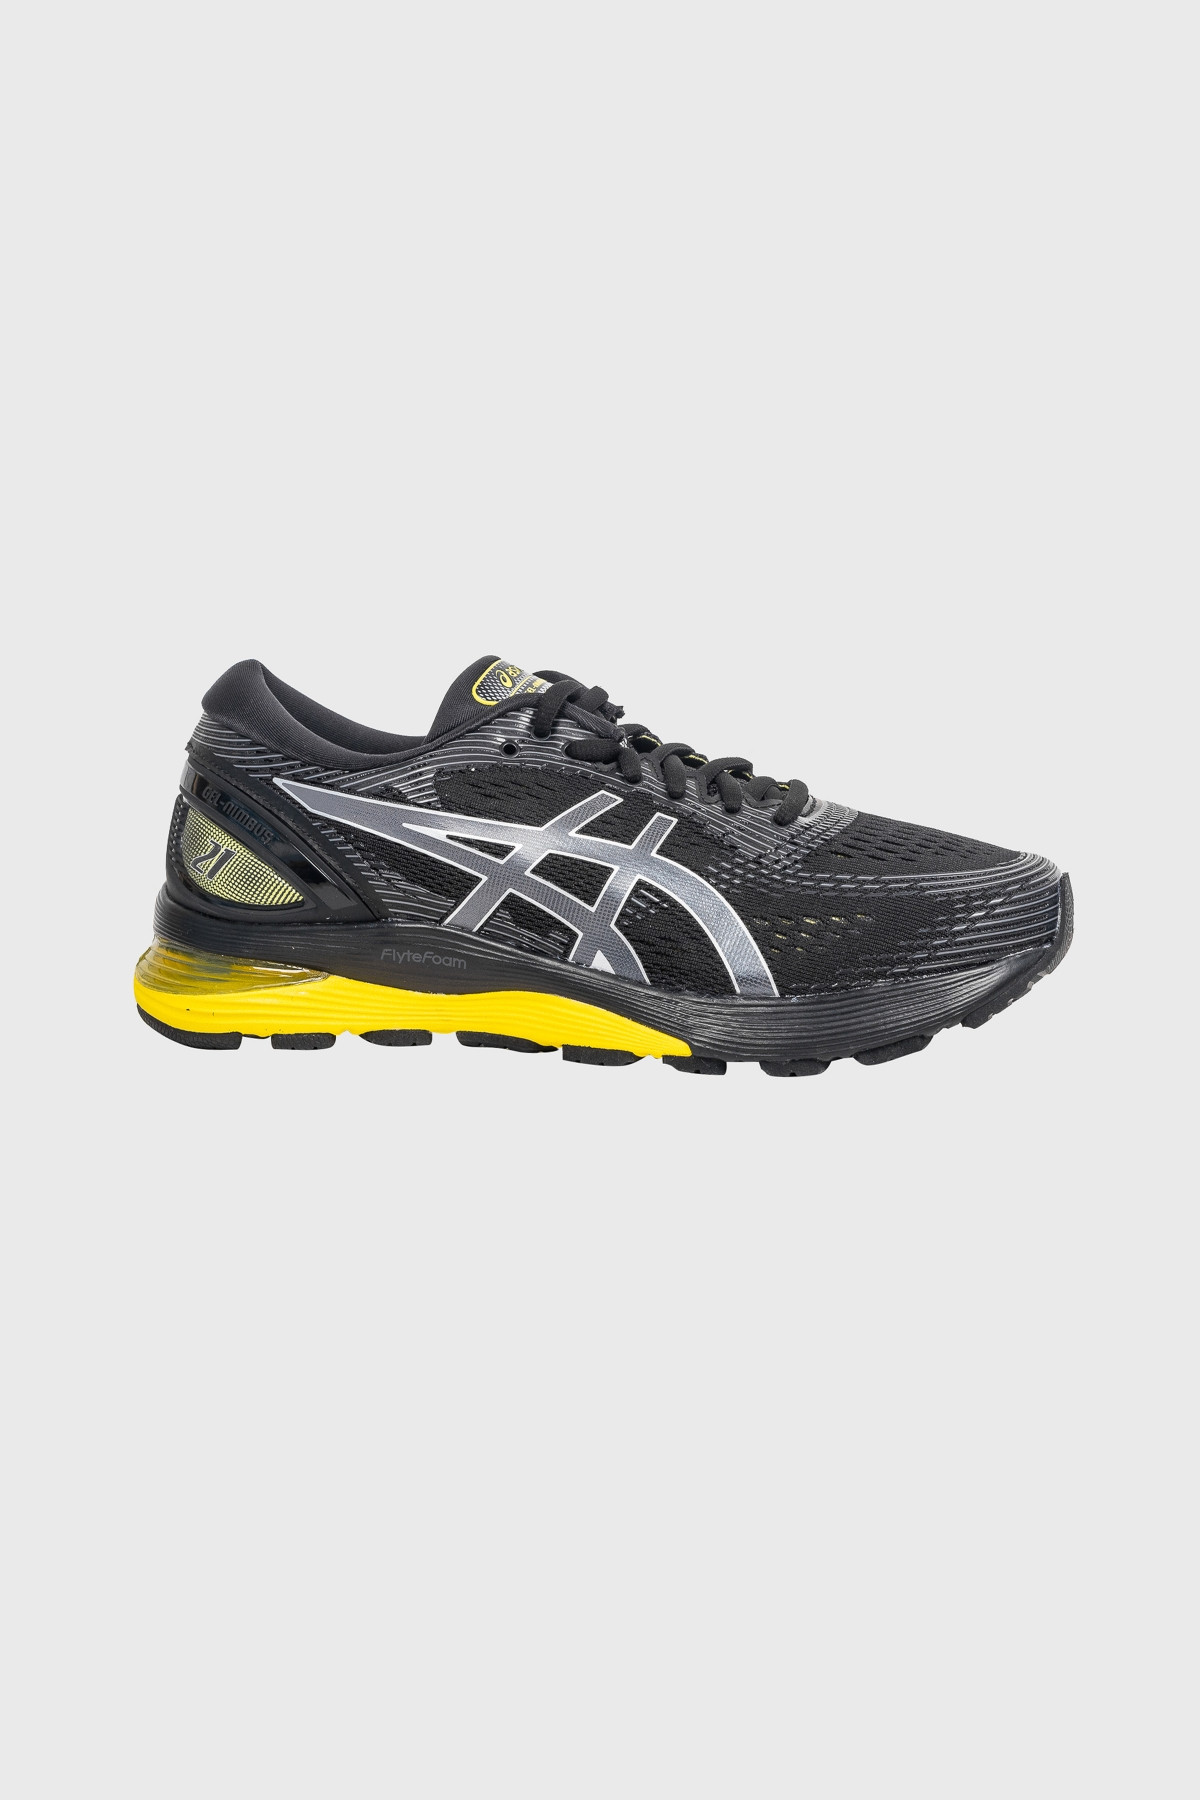 Asics - Gel Nimbus 21 - Black lemon spark